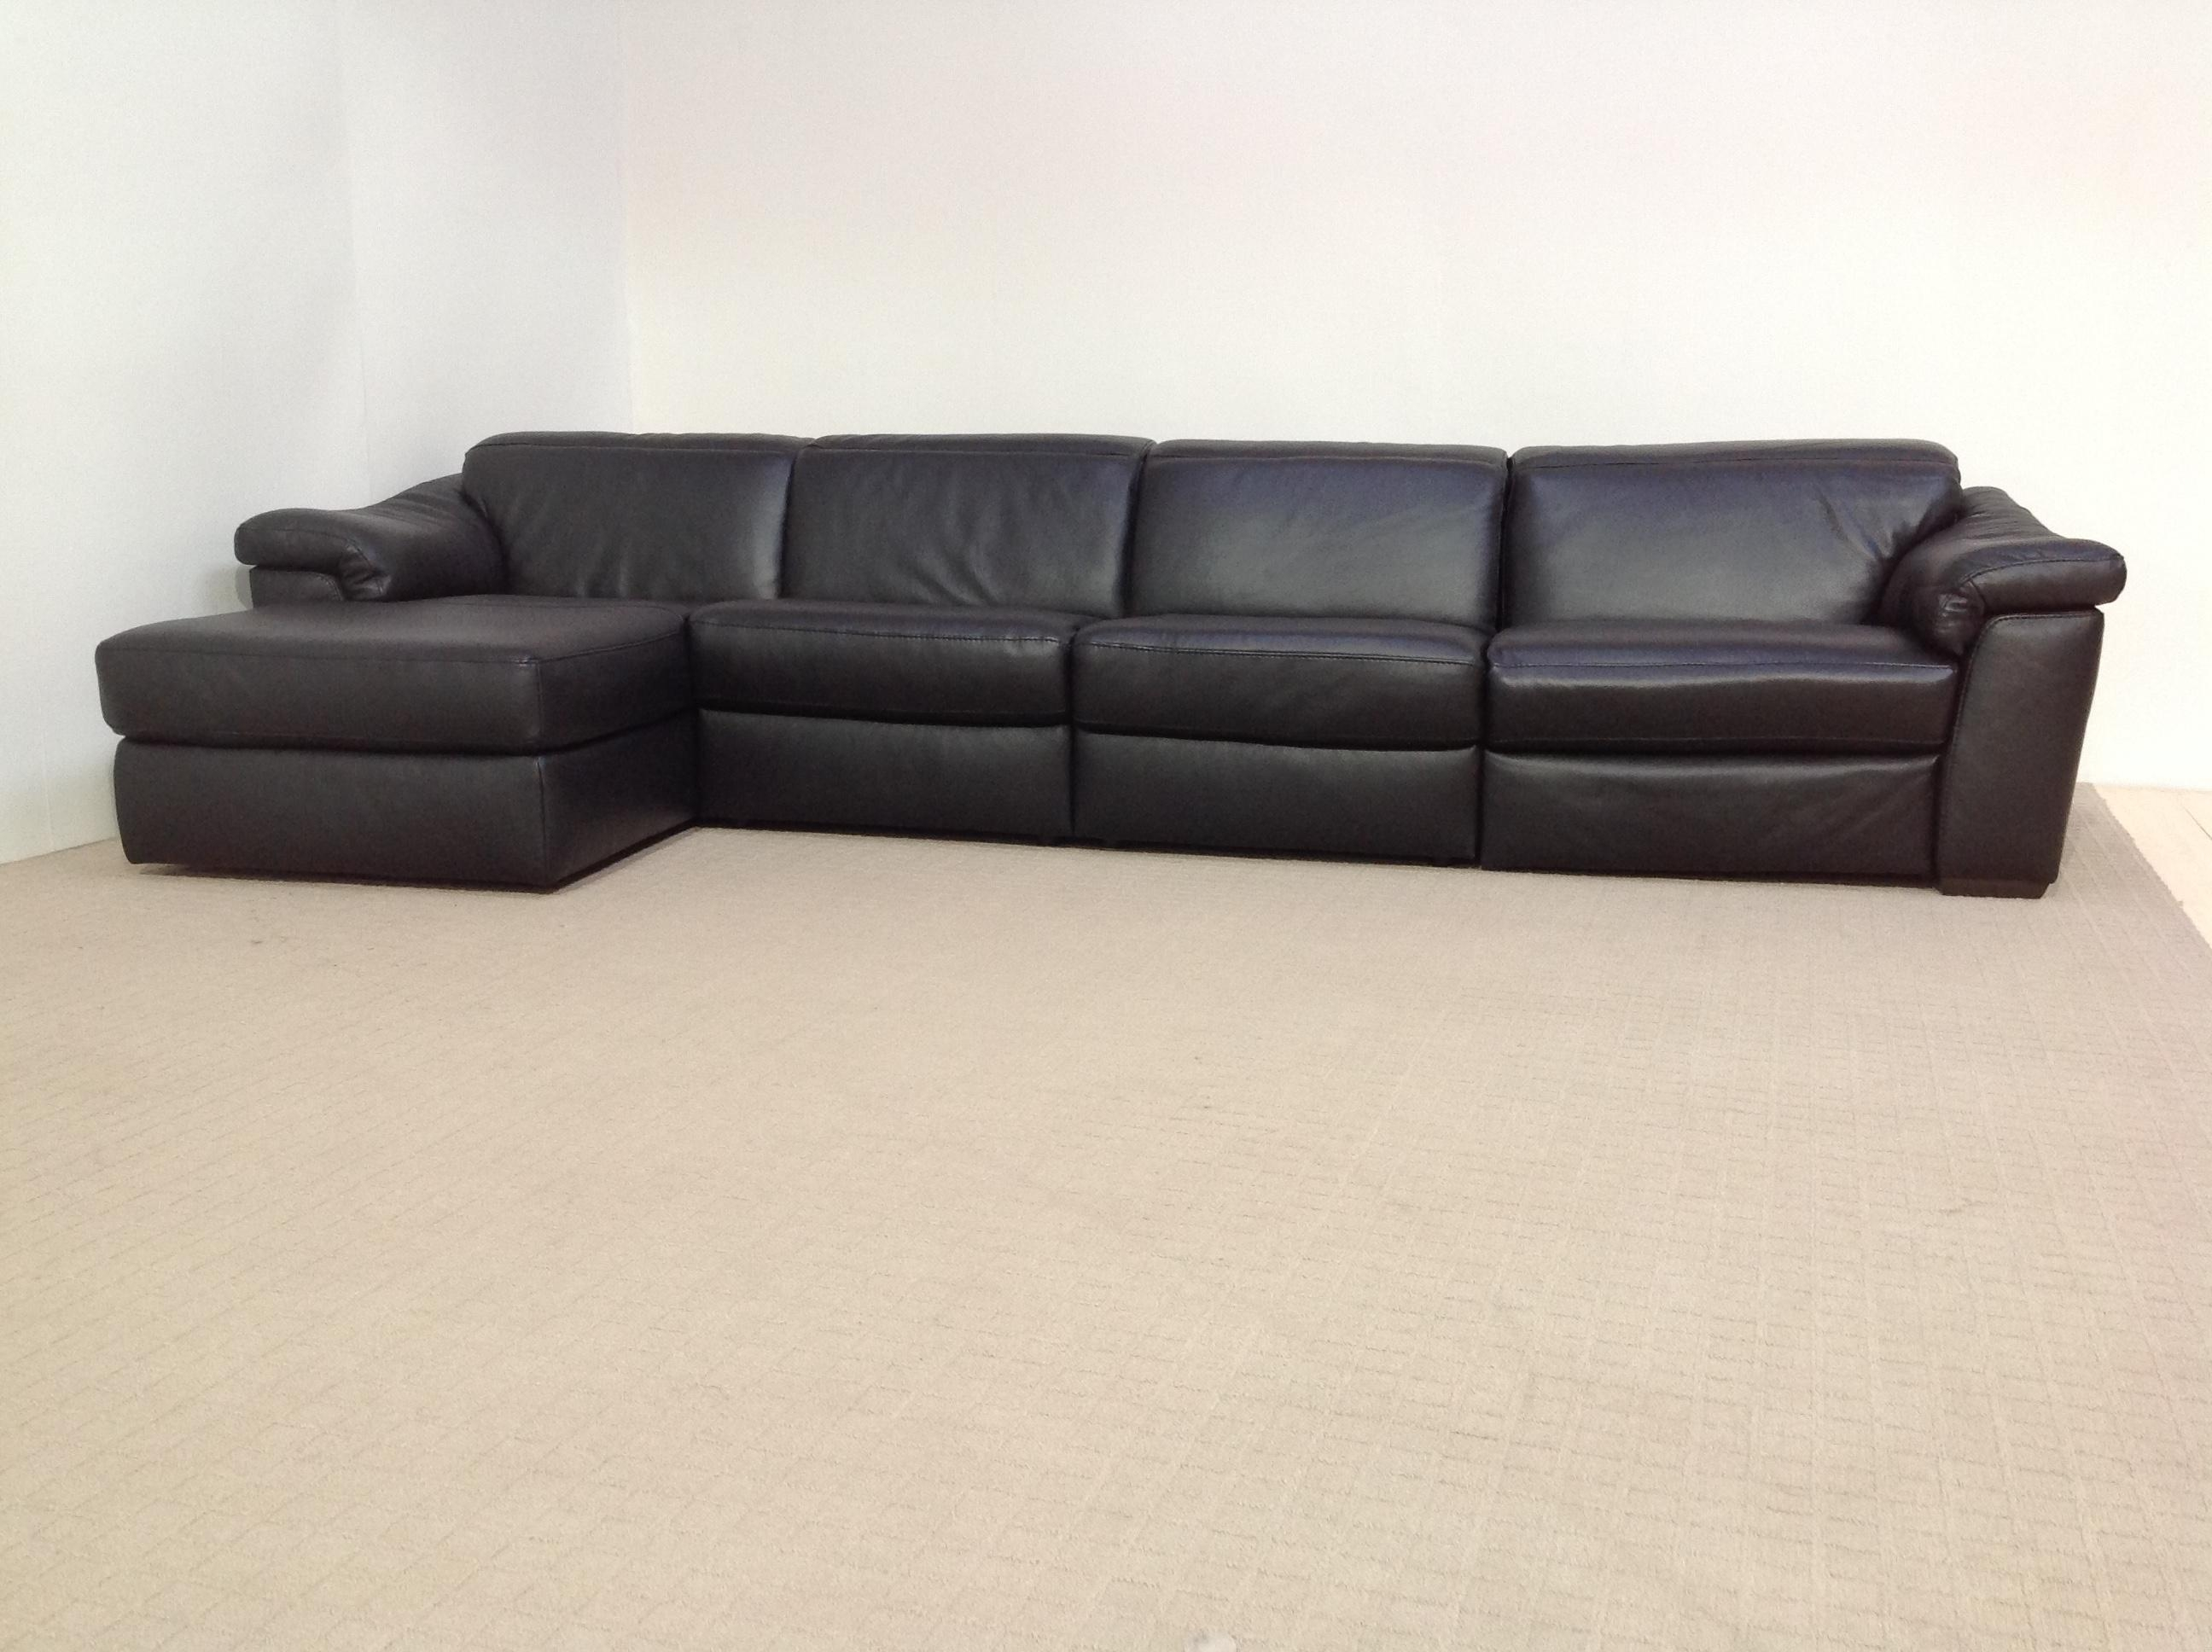 4 Seater Leather Sofas 33 With 4 Seater Leather Sofas within 4 Seat Sofas